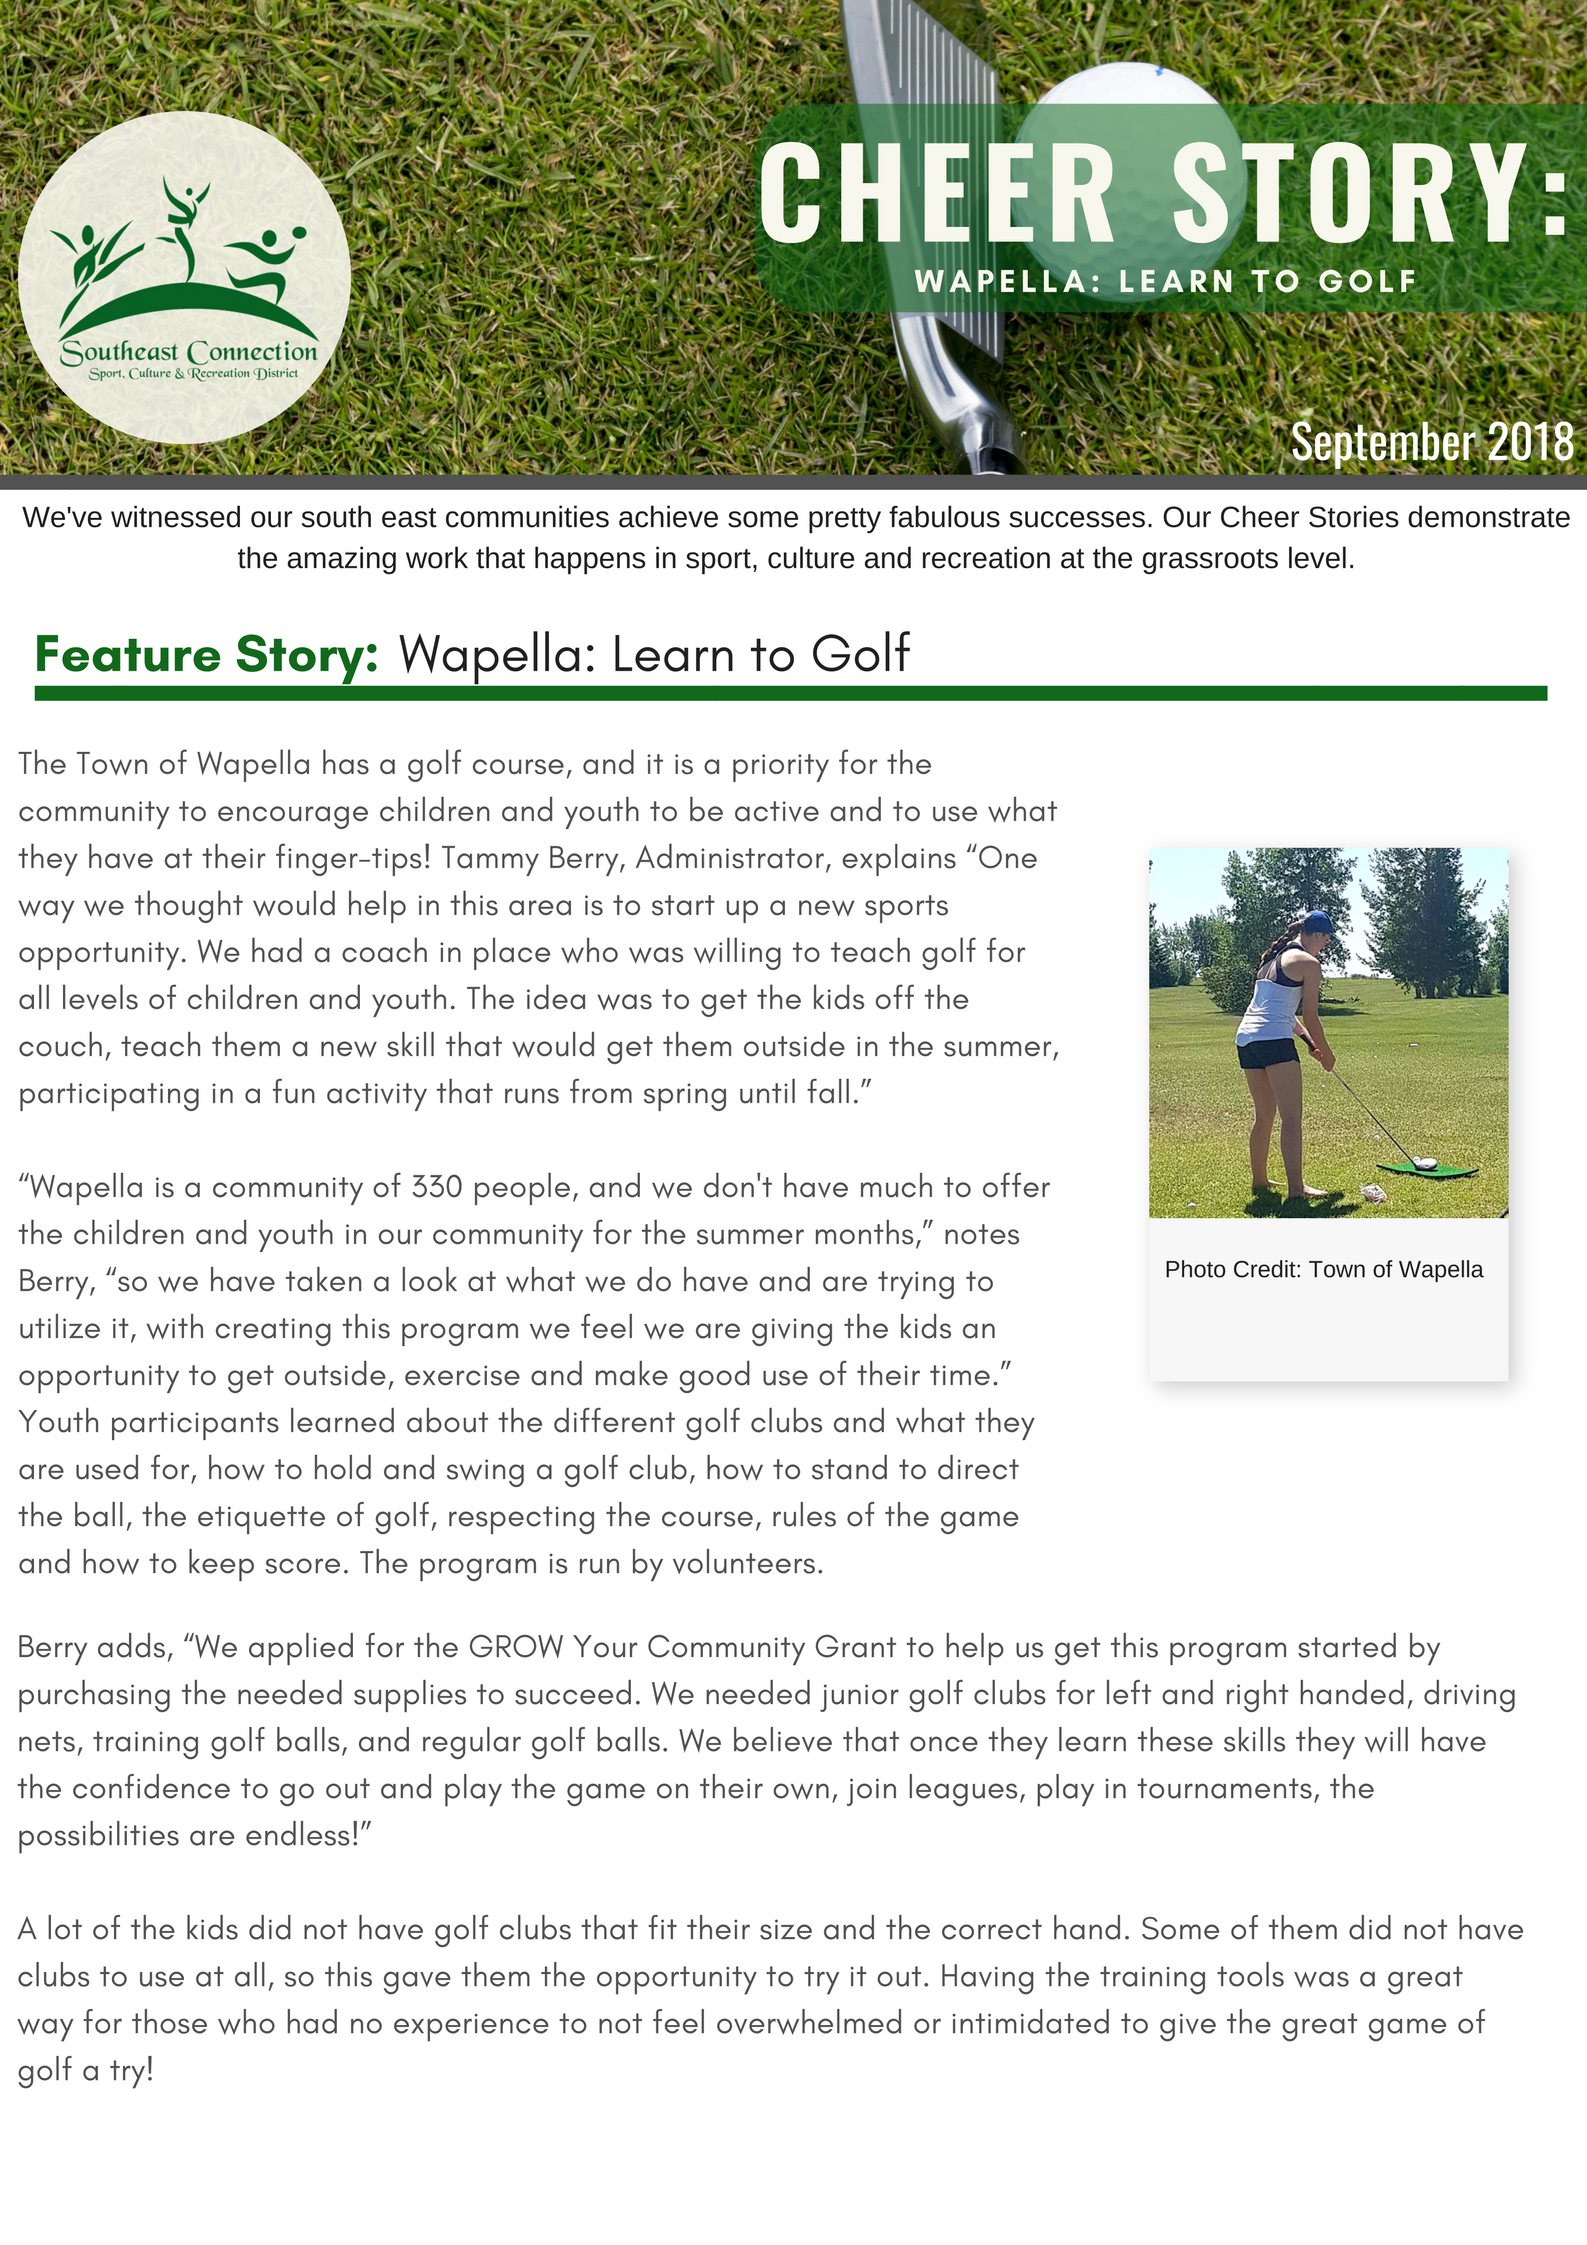 Cheer Story: Wapella Learn to Golf - Image 1